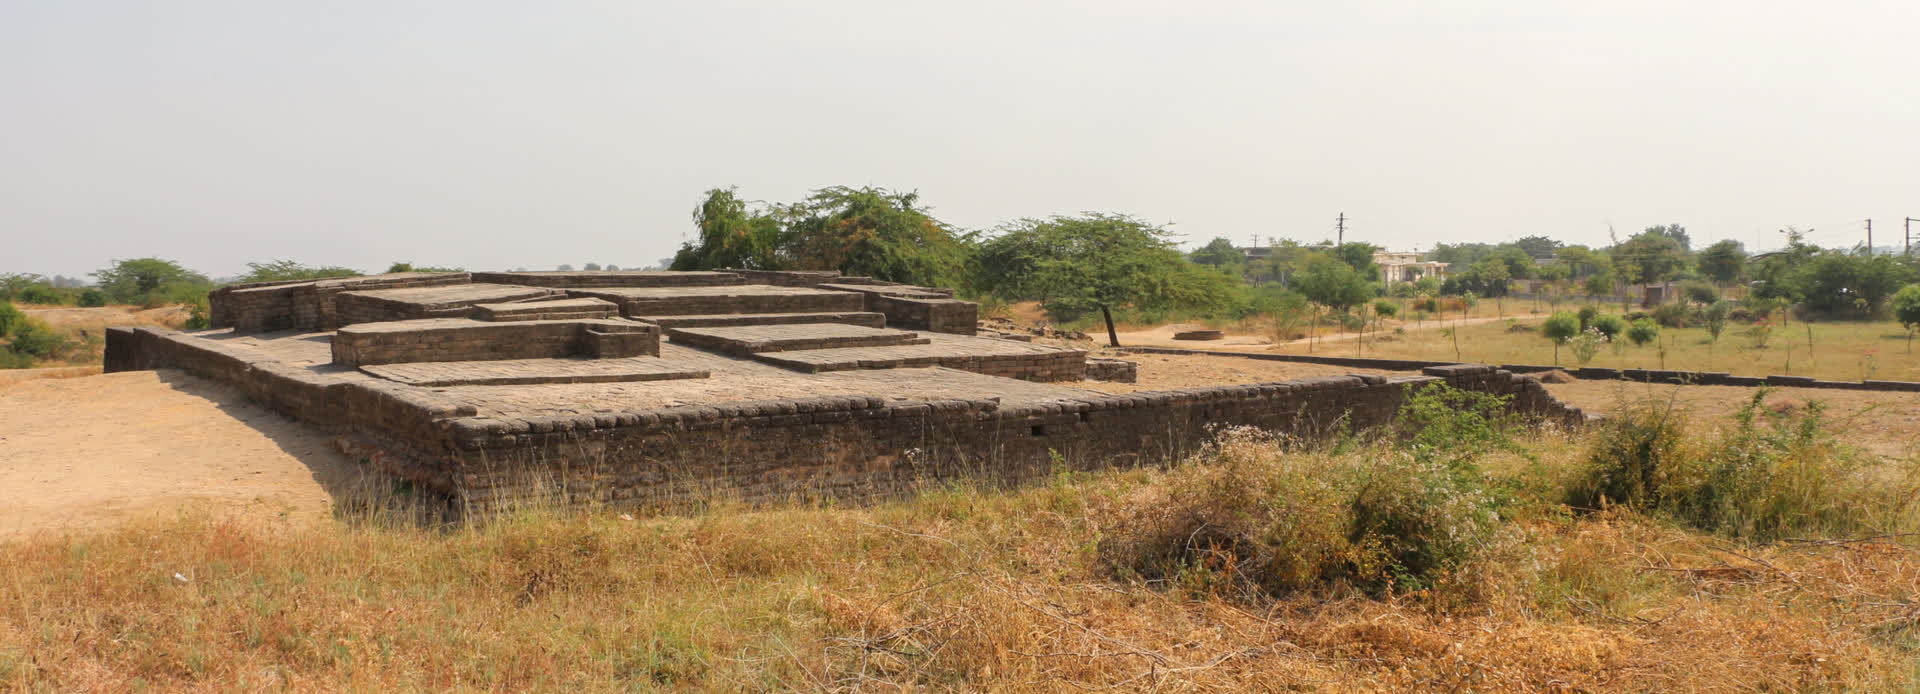 Lothal: India's First Port City